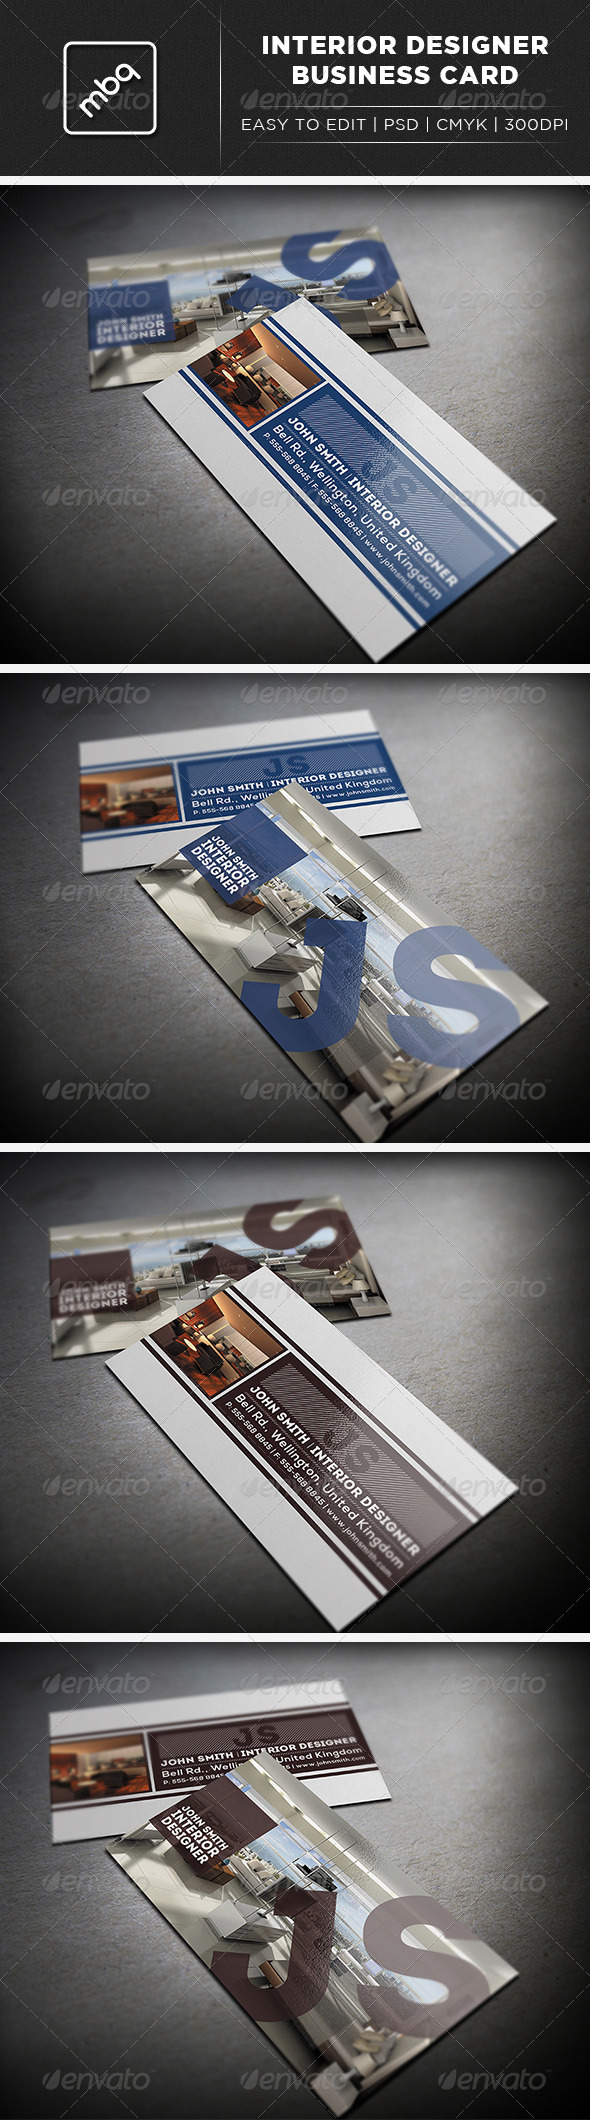 Interior Designer Business Card - Industry Specific Business Cards